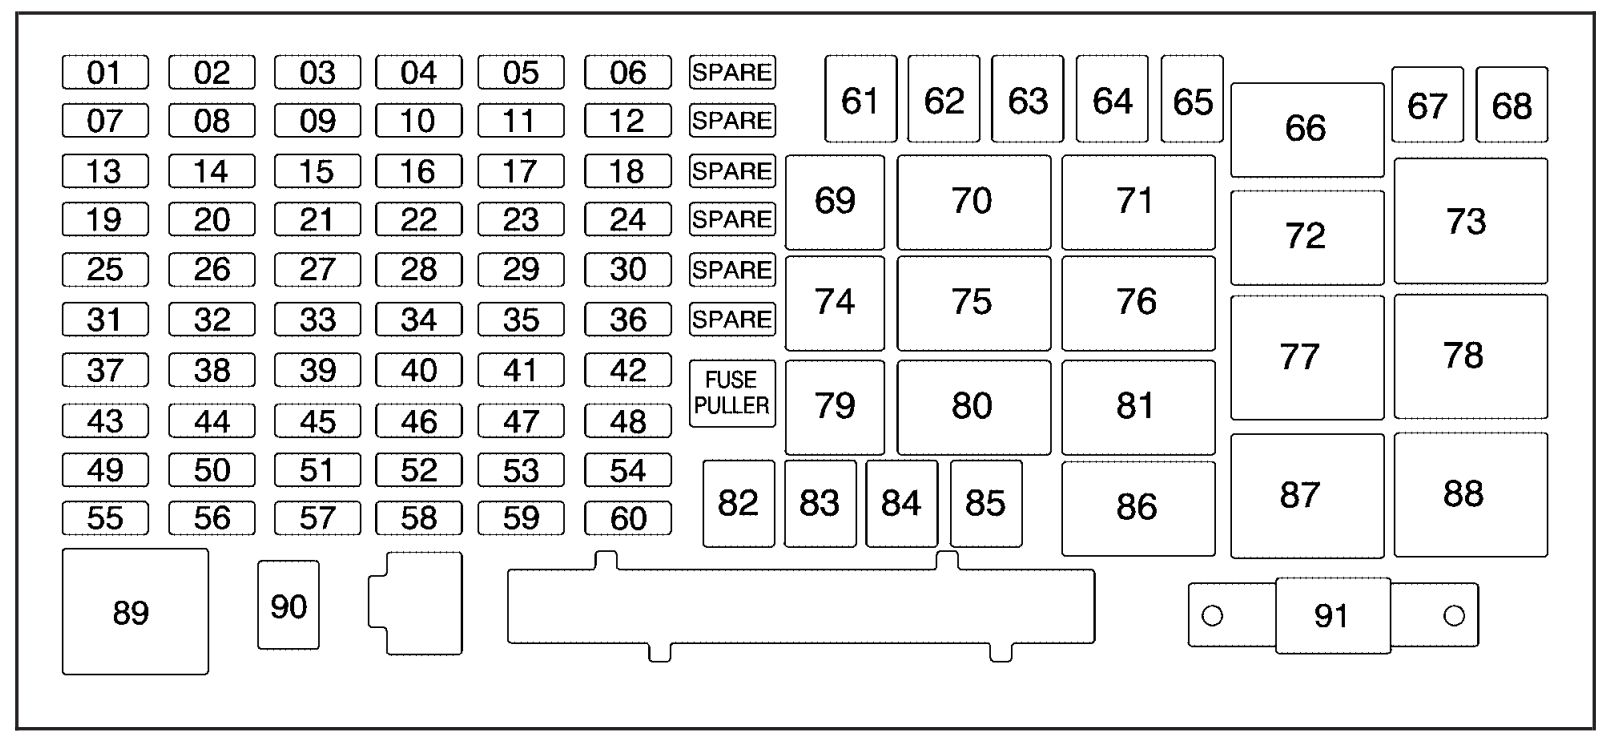 Hummer H2 Fuse Box Wiring Diagram Blogs Transfer Case 2009 H3 Portal Location For Speedometer 2003 07